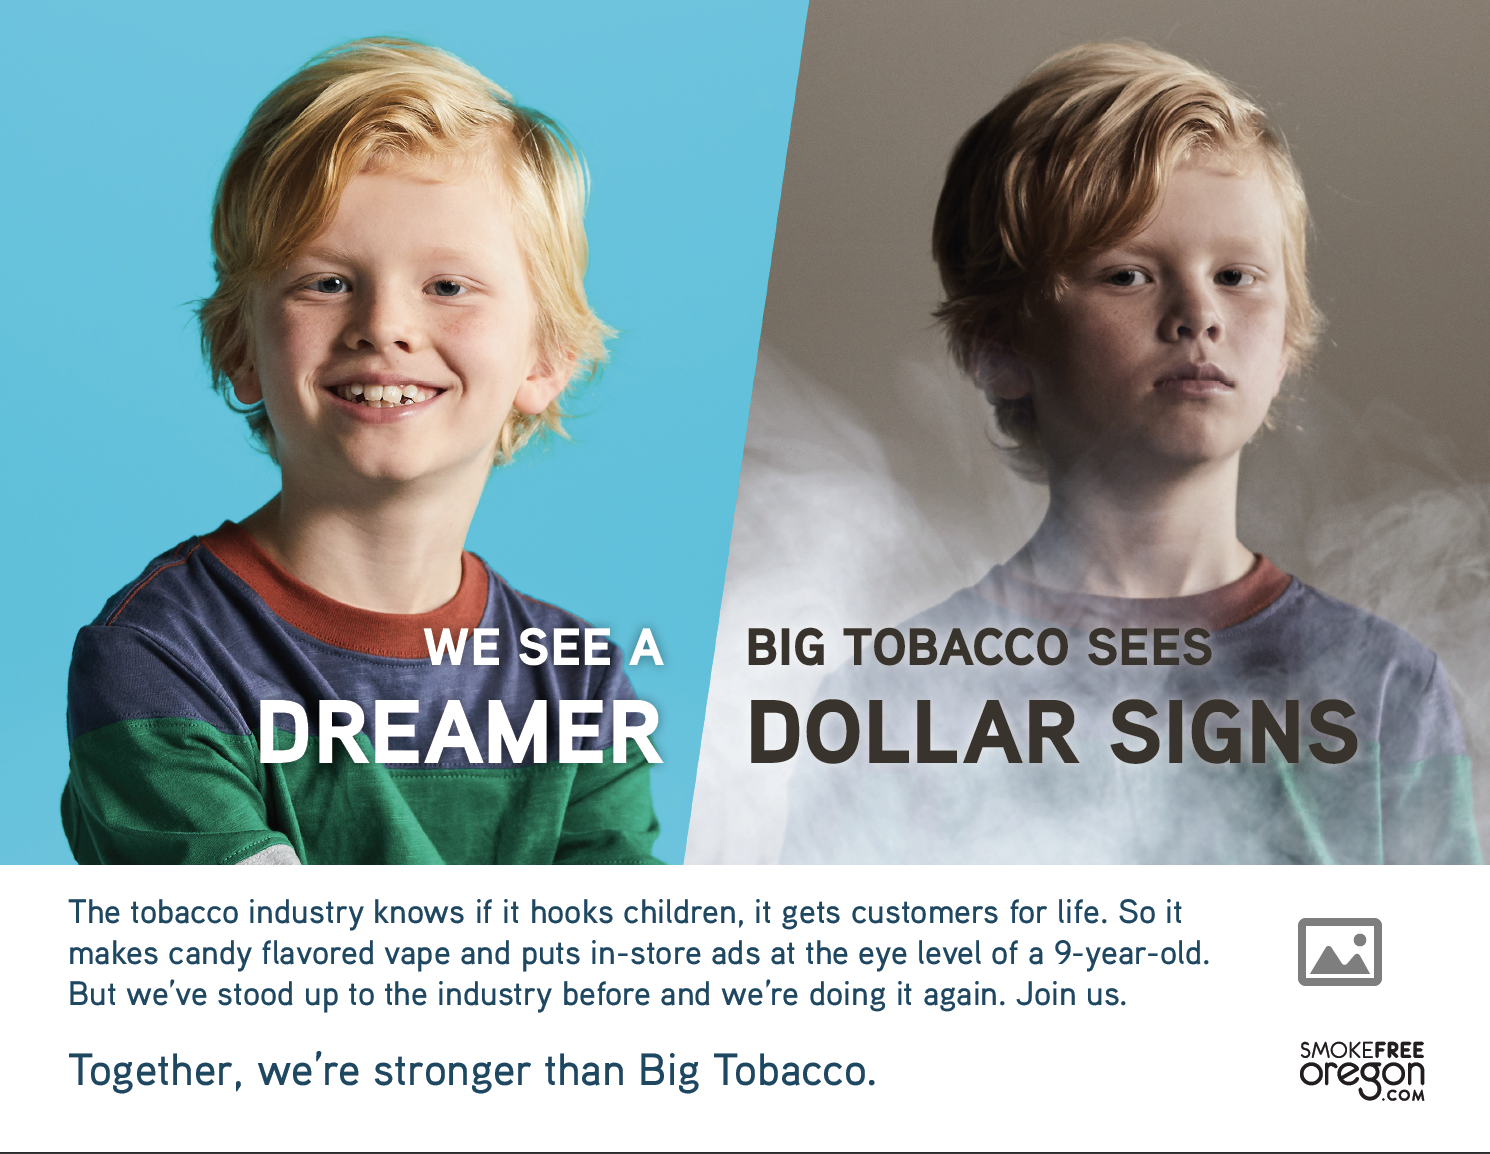 Child with bright blue background: We see a dreamer. 